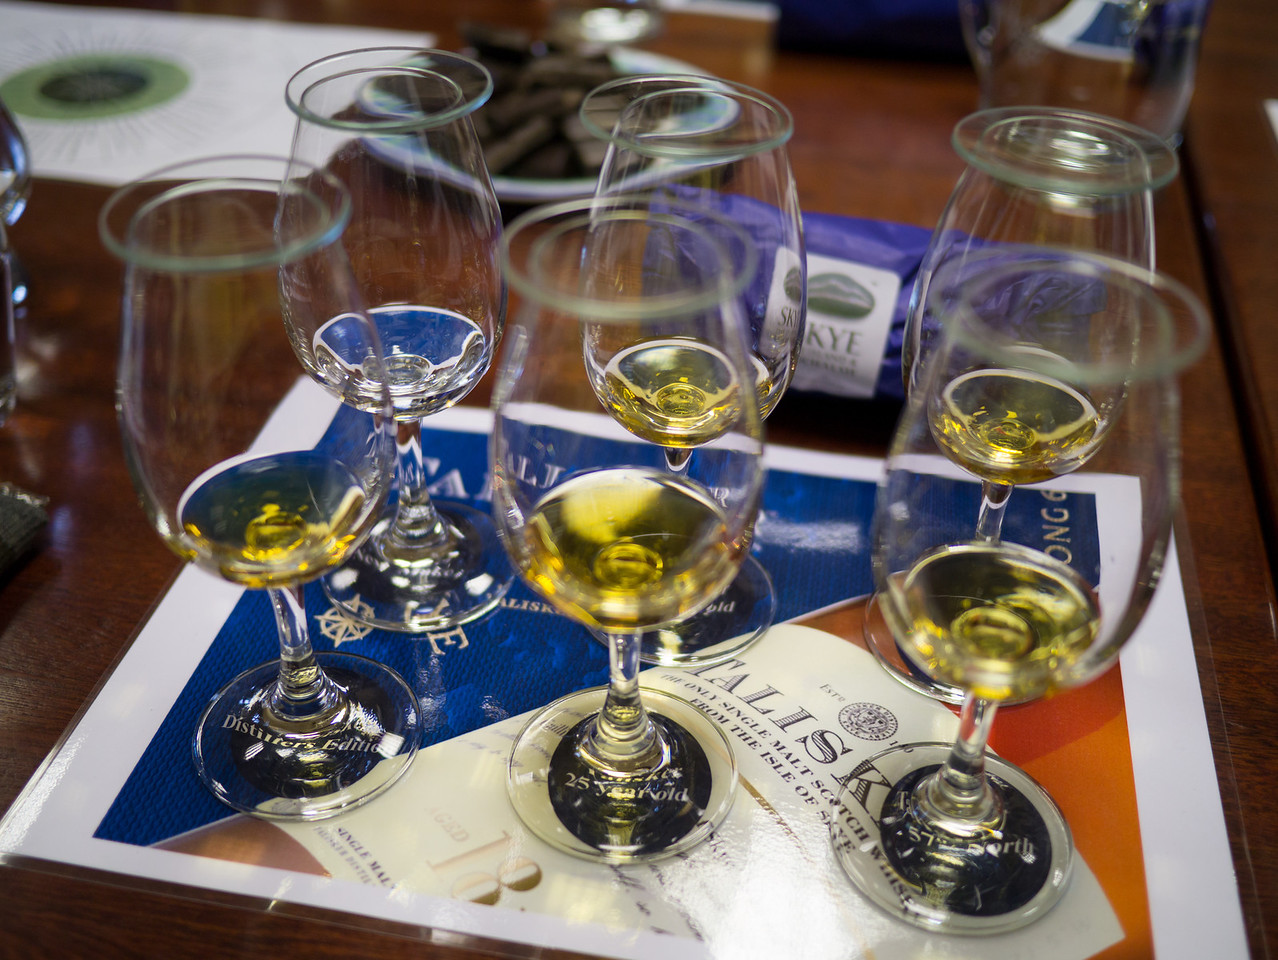 The 6 Whiskeys we got to try.